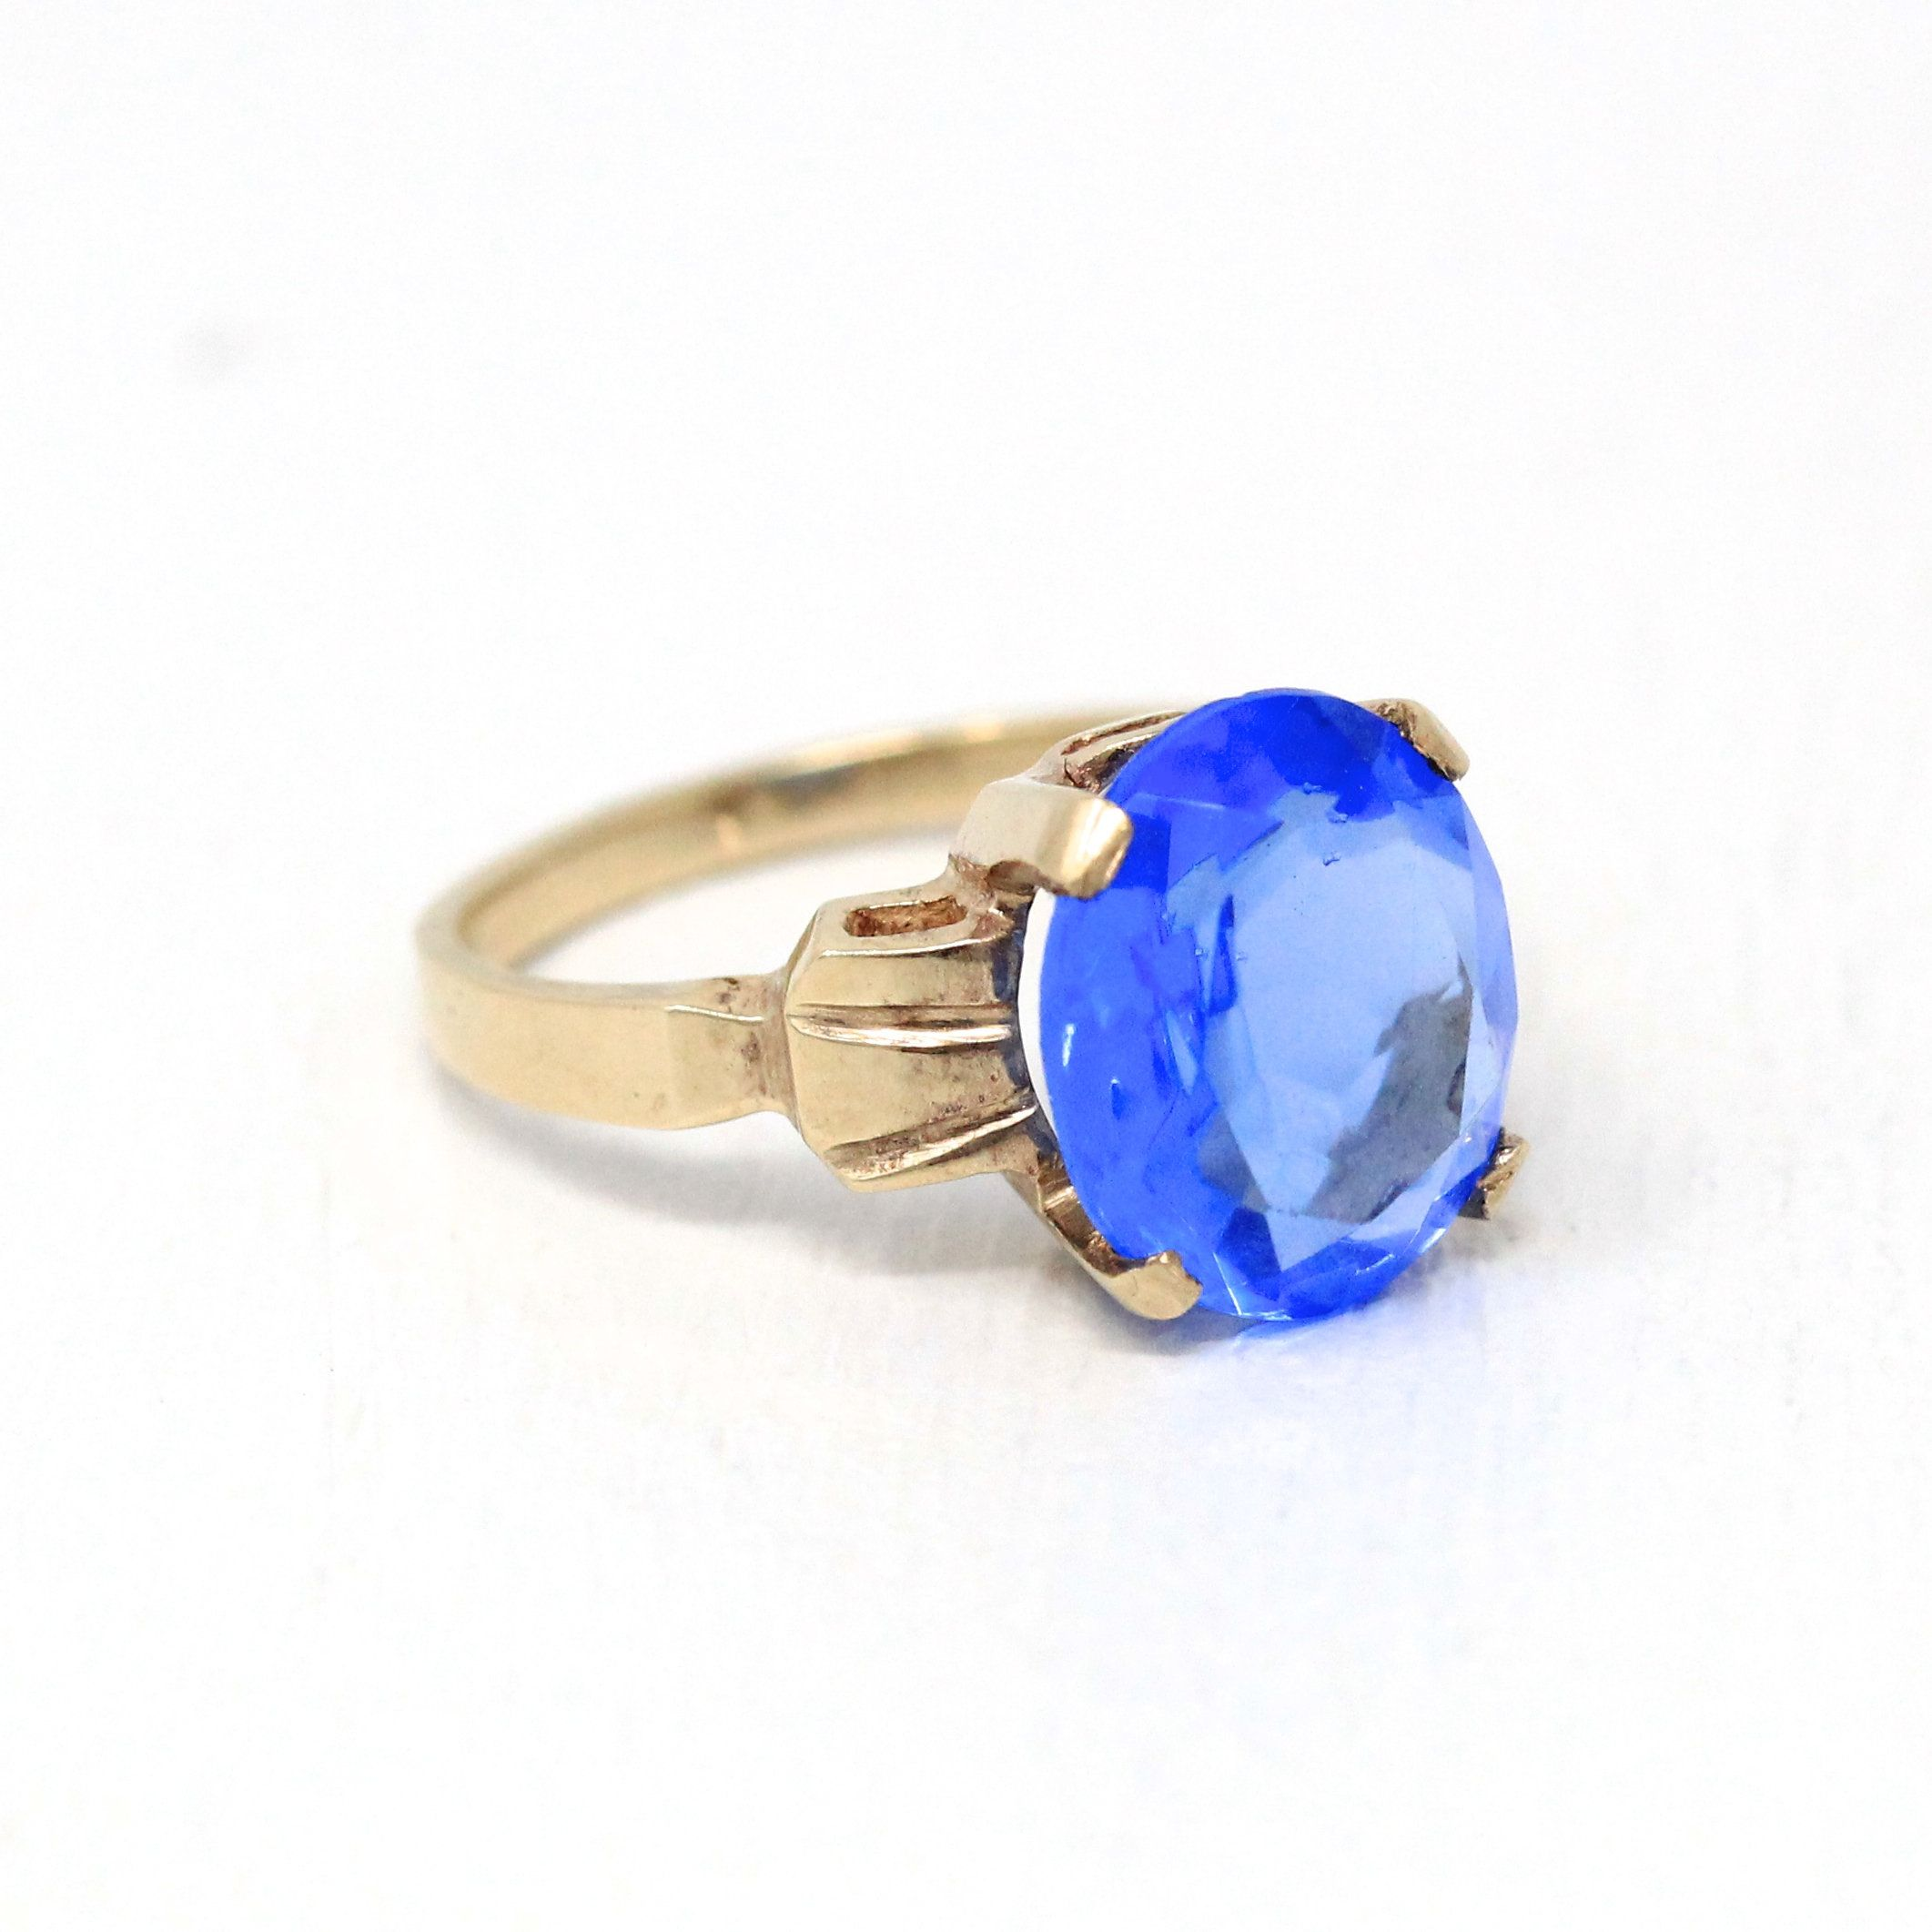 Blue Stone Ring Vintage 10k Yellow Gold 1940s Bright Cobalt Blue Size 6 1 2 Old Stock Oval Faceted Glass Fine Mid Century